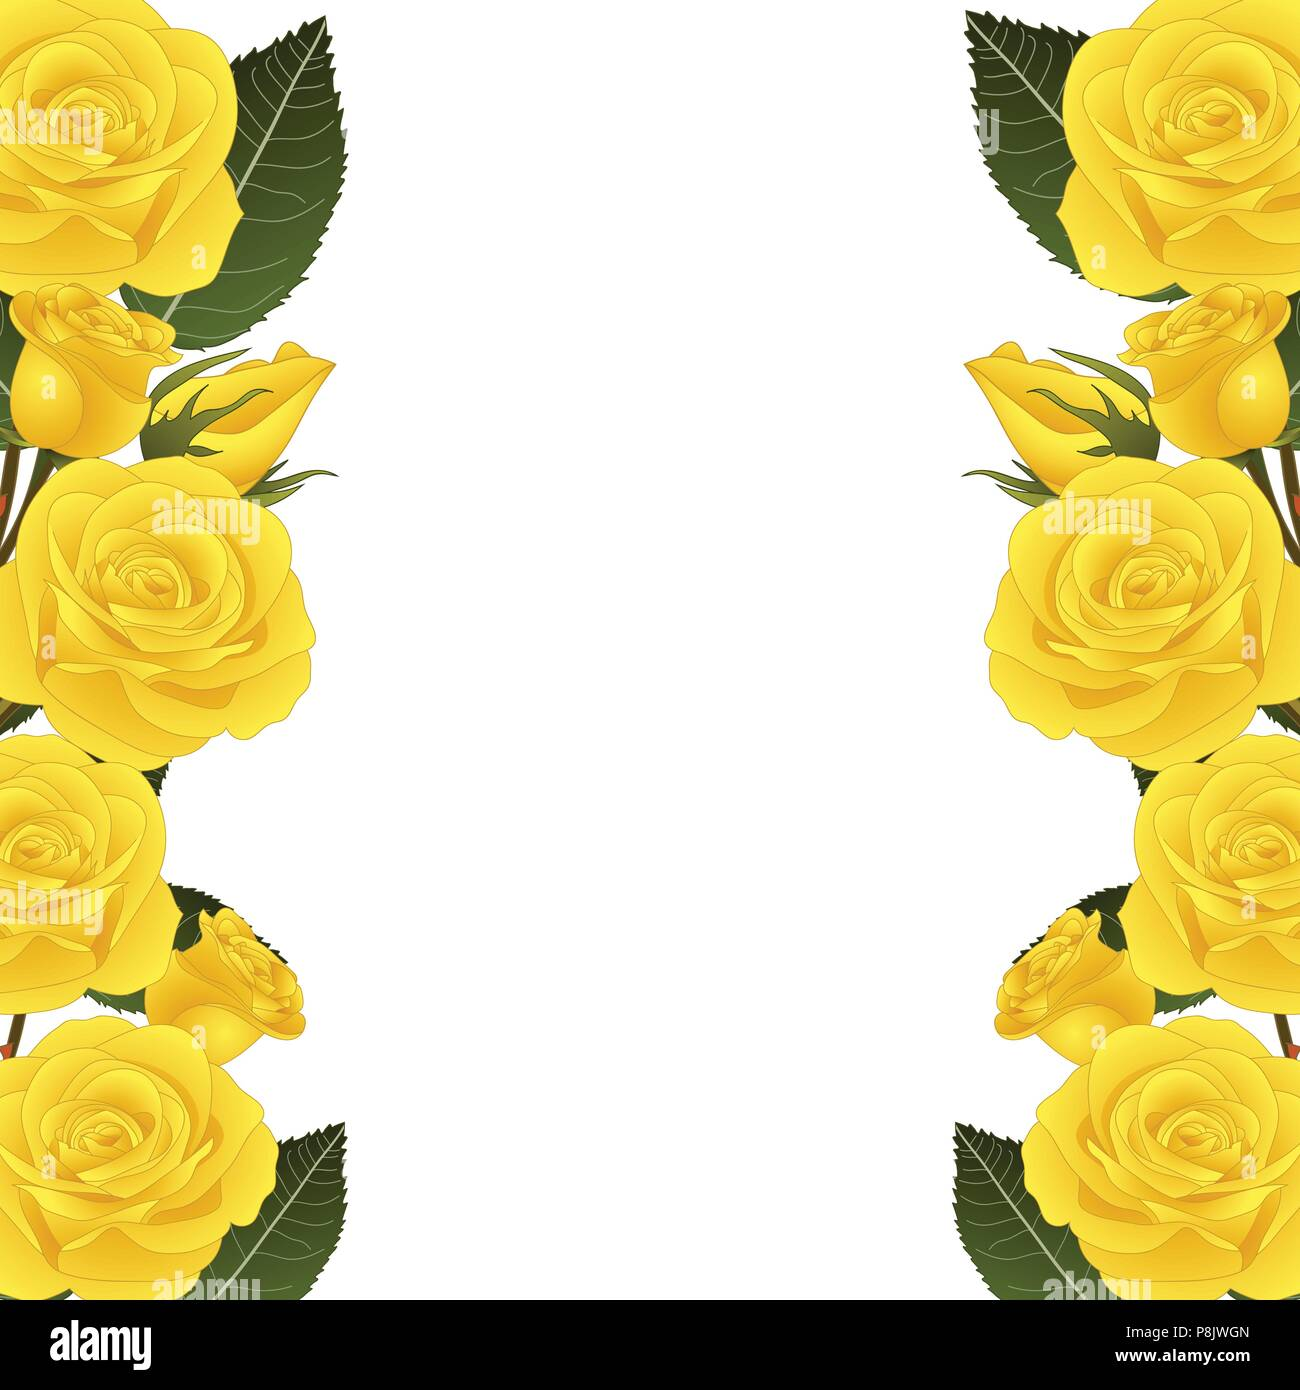 Yellow Rose Flower Frame Border. isolated on White Background ...